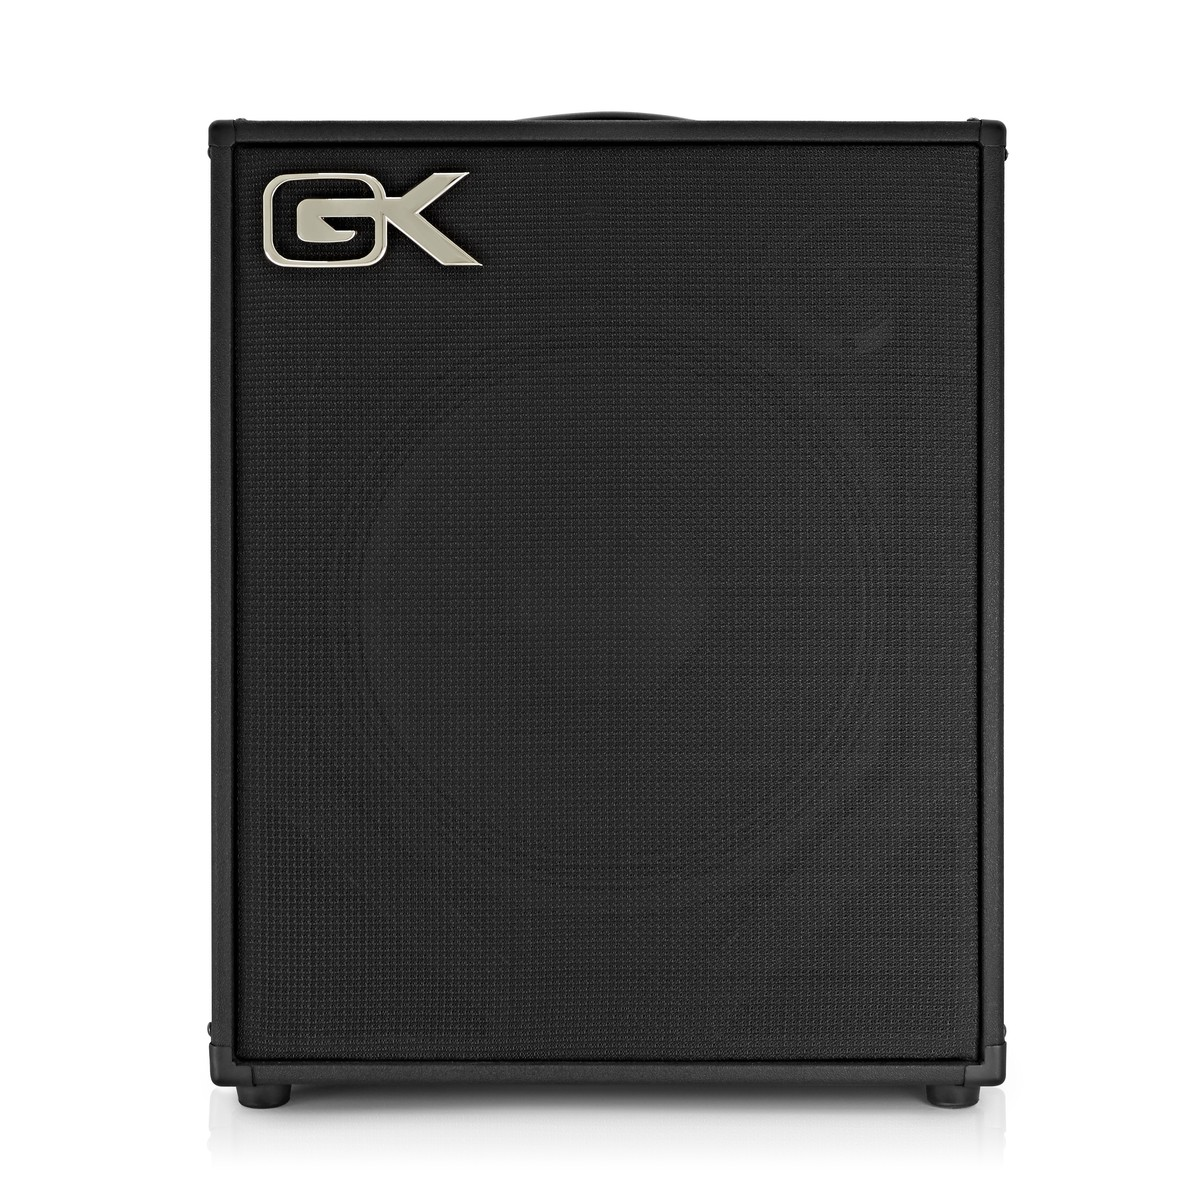 Click to view product details and reviews for Gallien Krueger Mb 115 Ii Bass Combo.